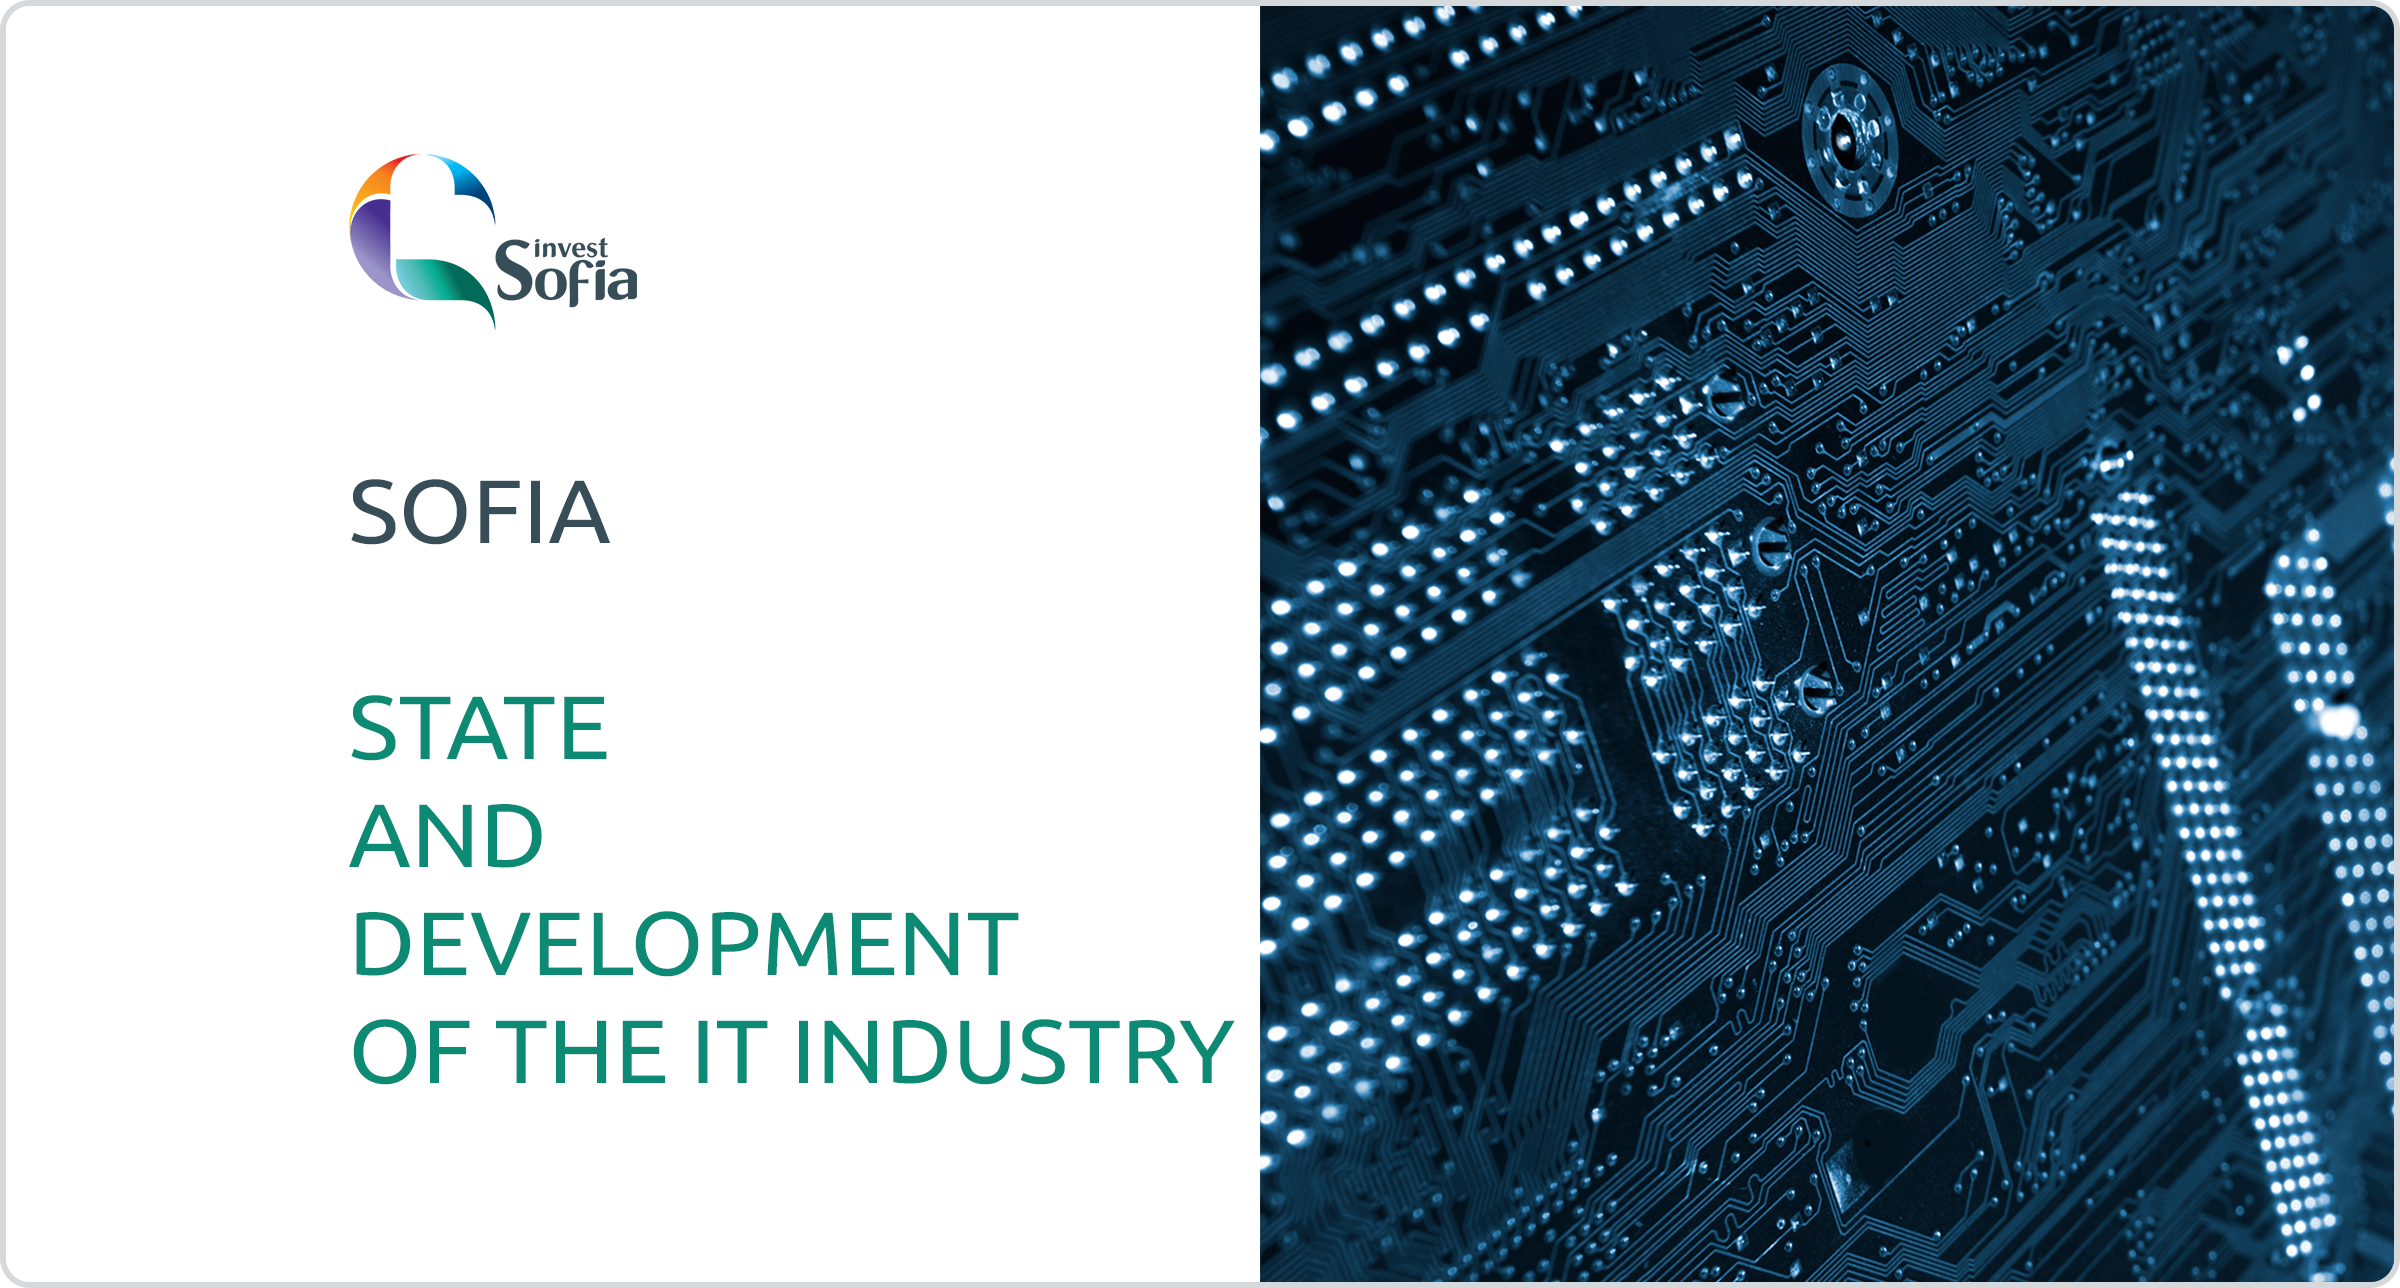 State-and-Development-IT-Sector-Report-Sofia-2017-eng